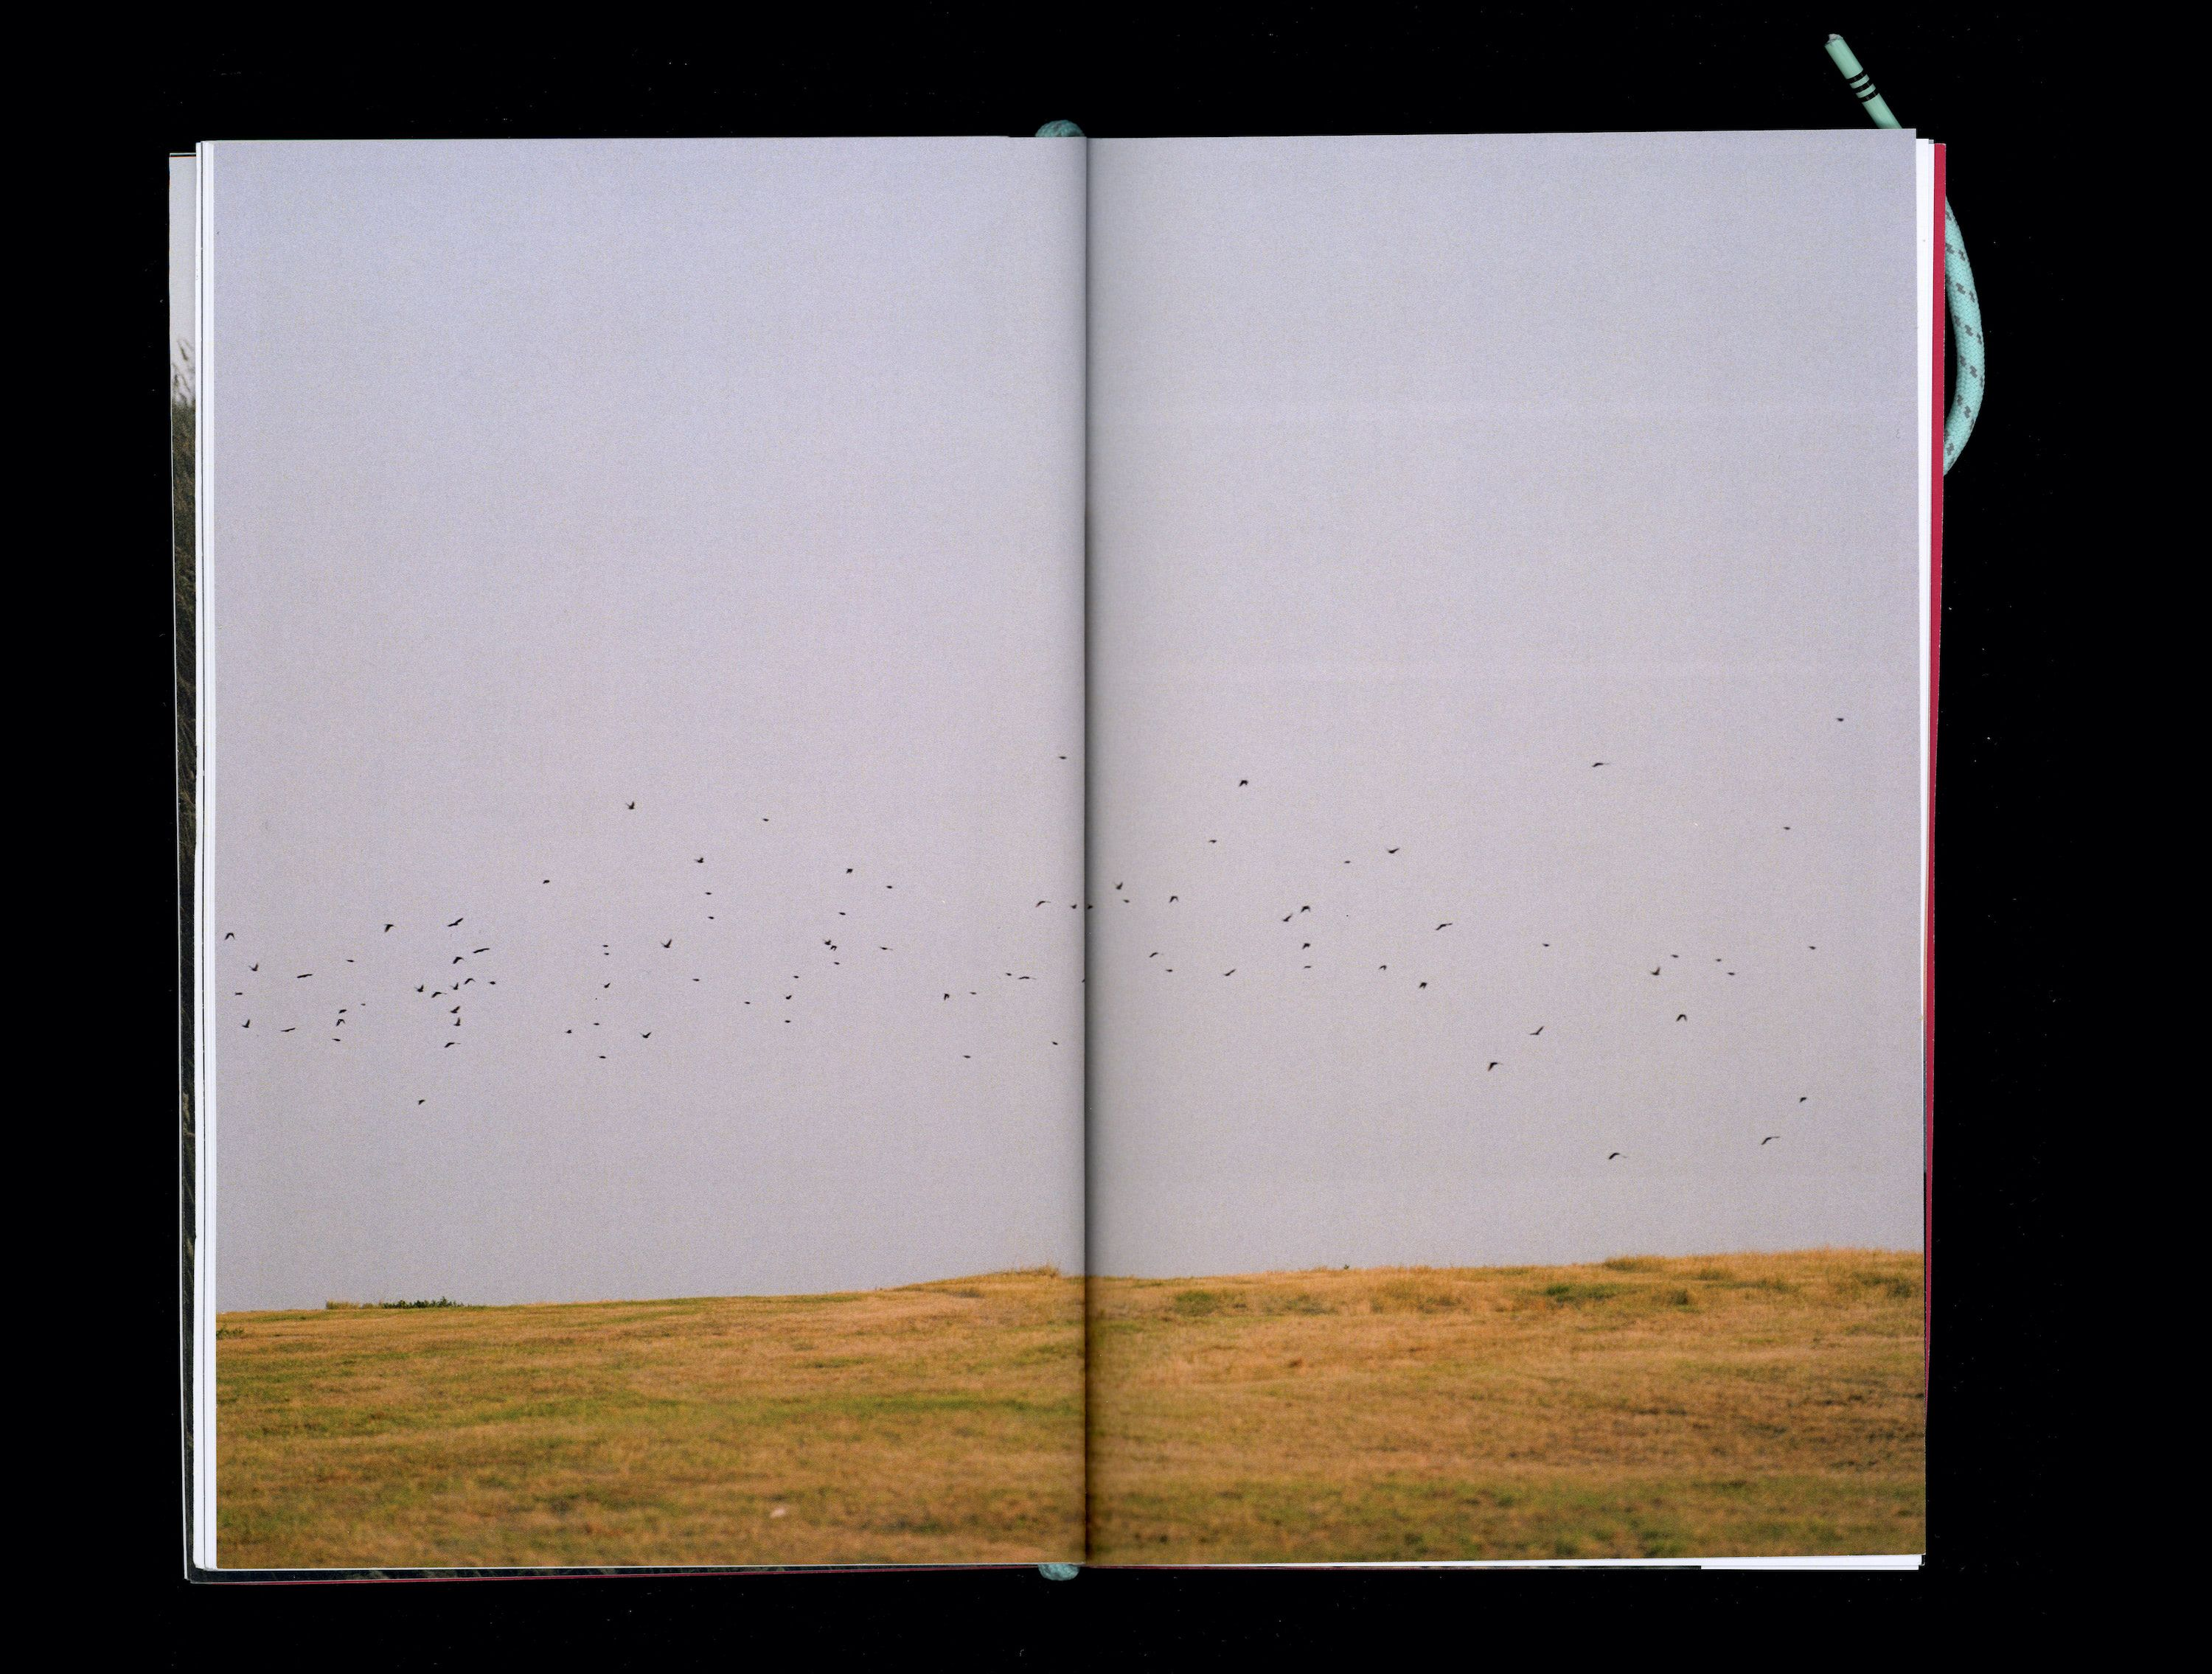 Photograph in book of flock of small black birds flying above sunlit grass plain